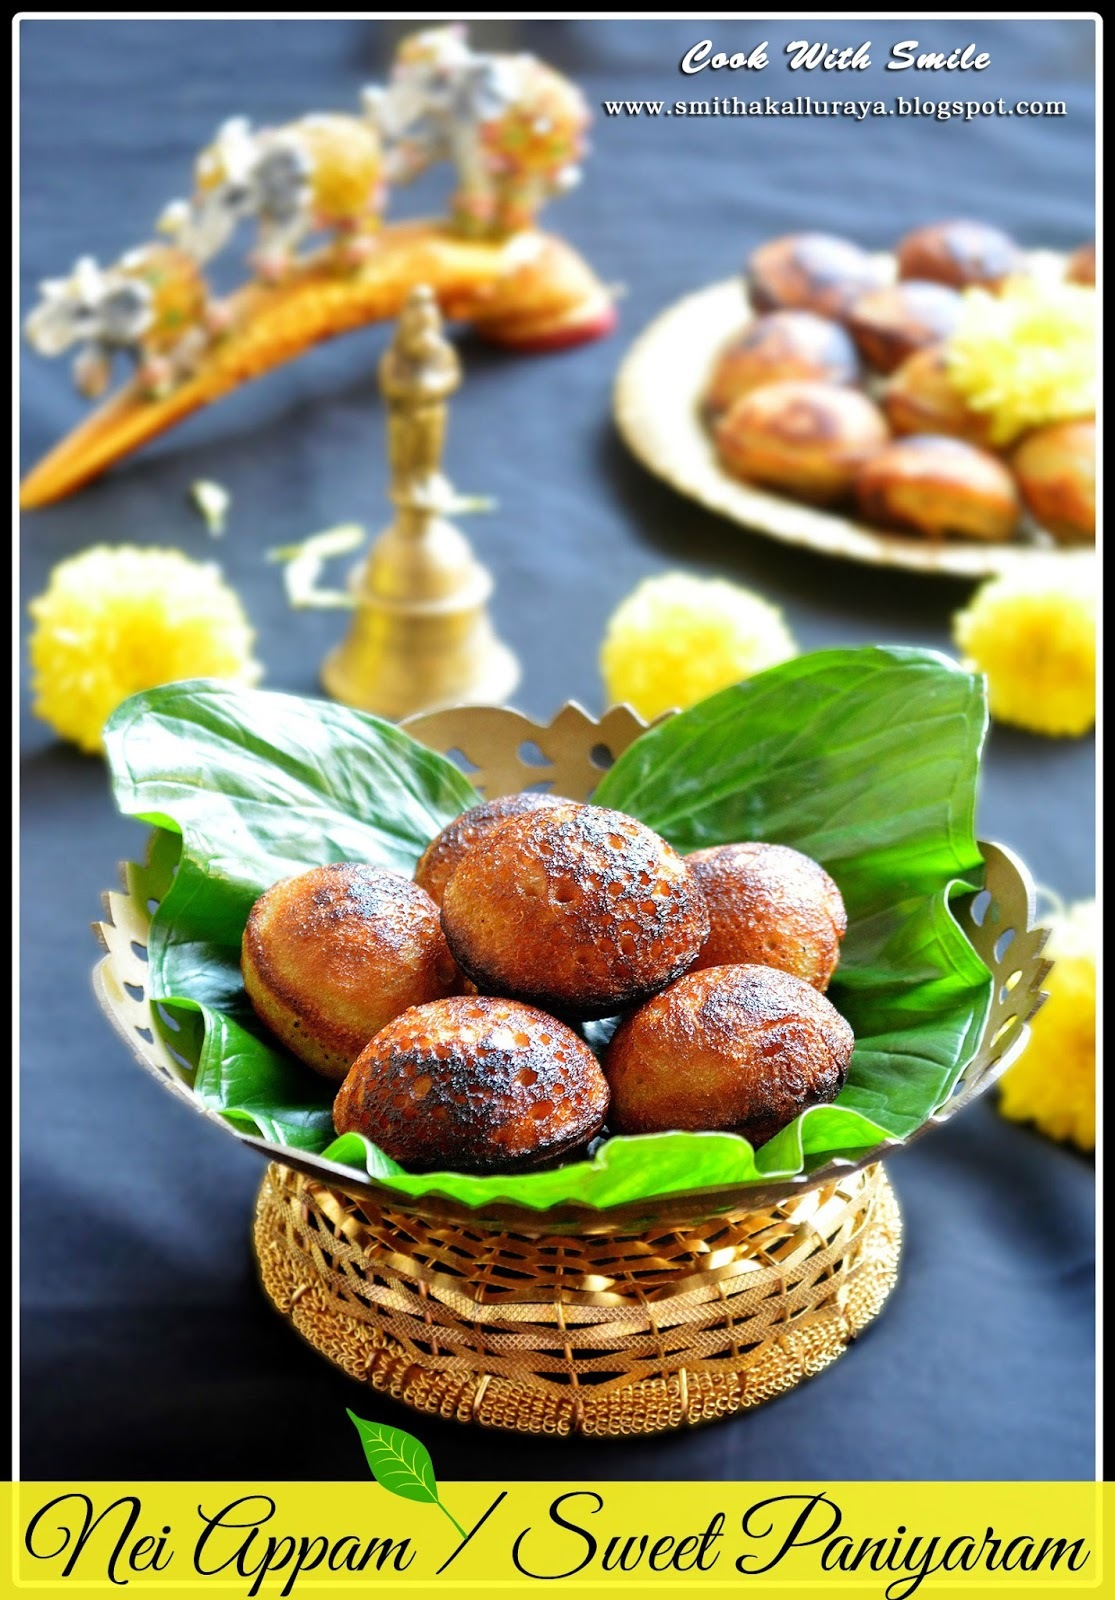 SWEET APPA / APPE RECIPE / NEI APPAM / SWEET PANIYARAM